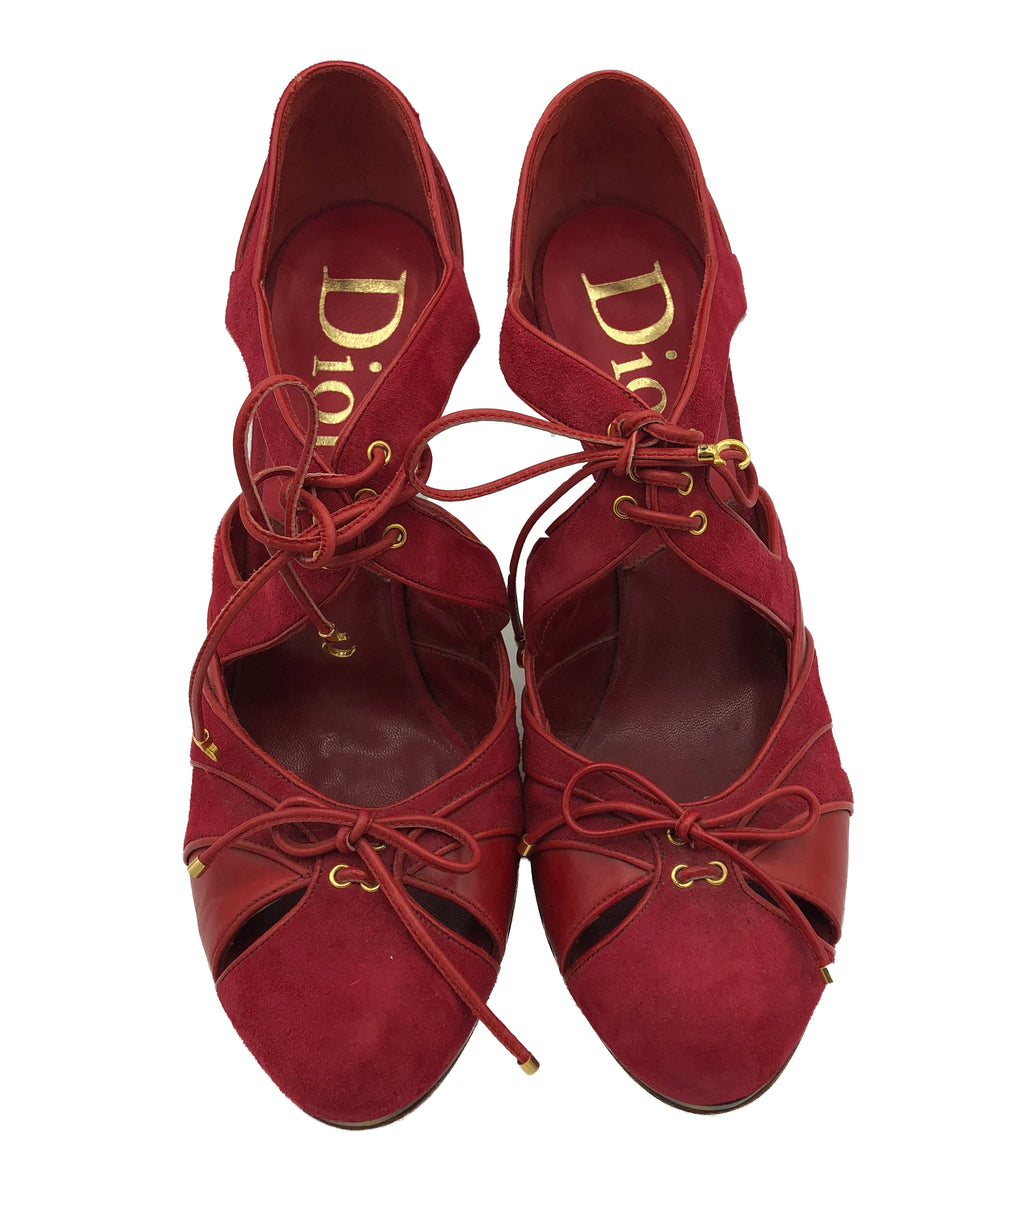 Dior Contemporary Tortoise Heeled Red Suede Shoes 1 of 6